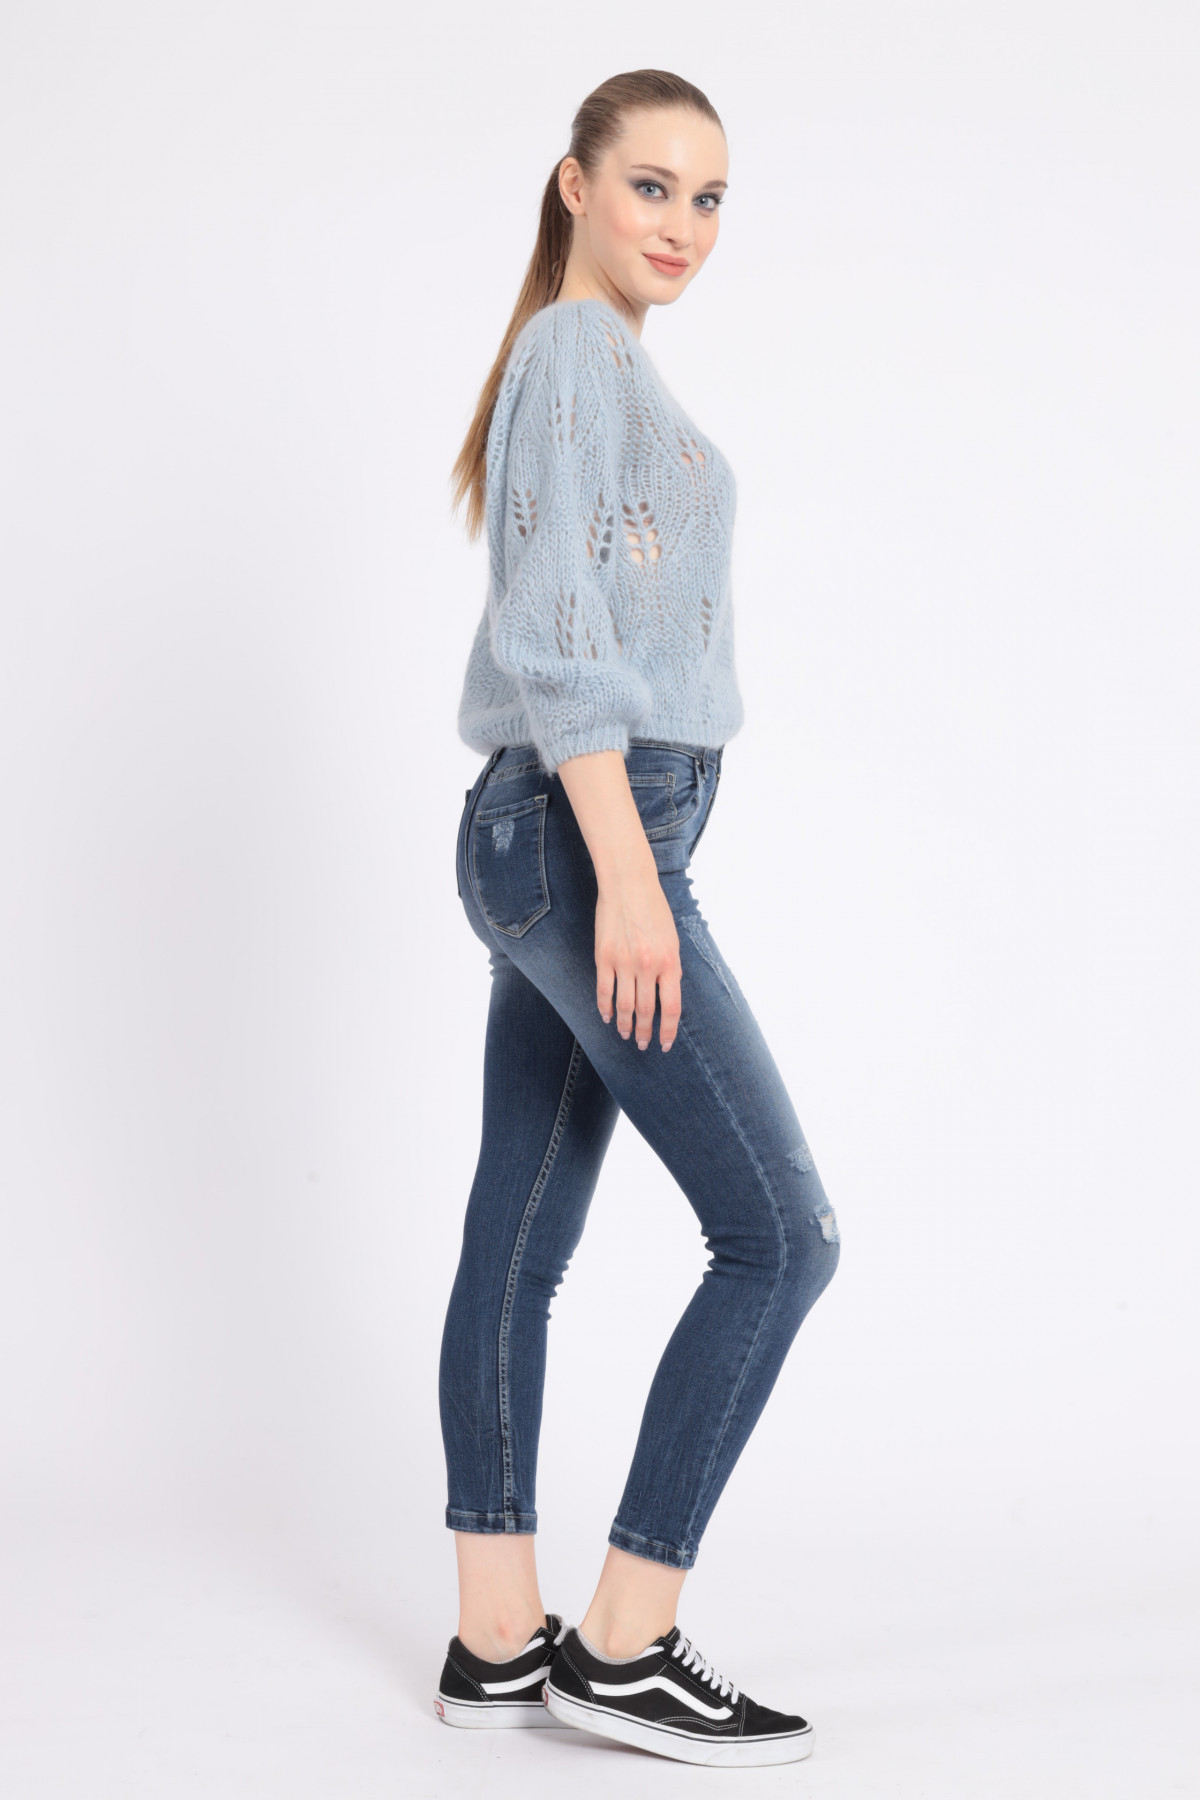 5 Pockets Skinny Jeans with Abrasions